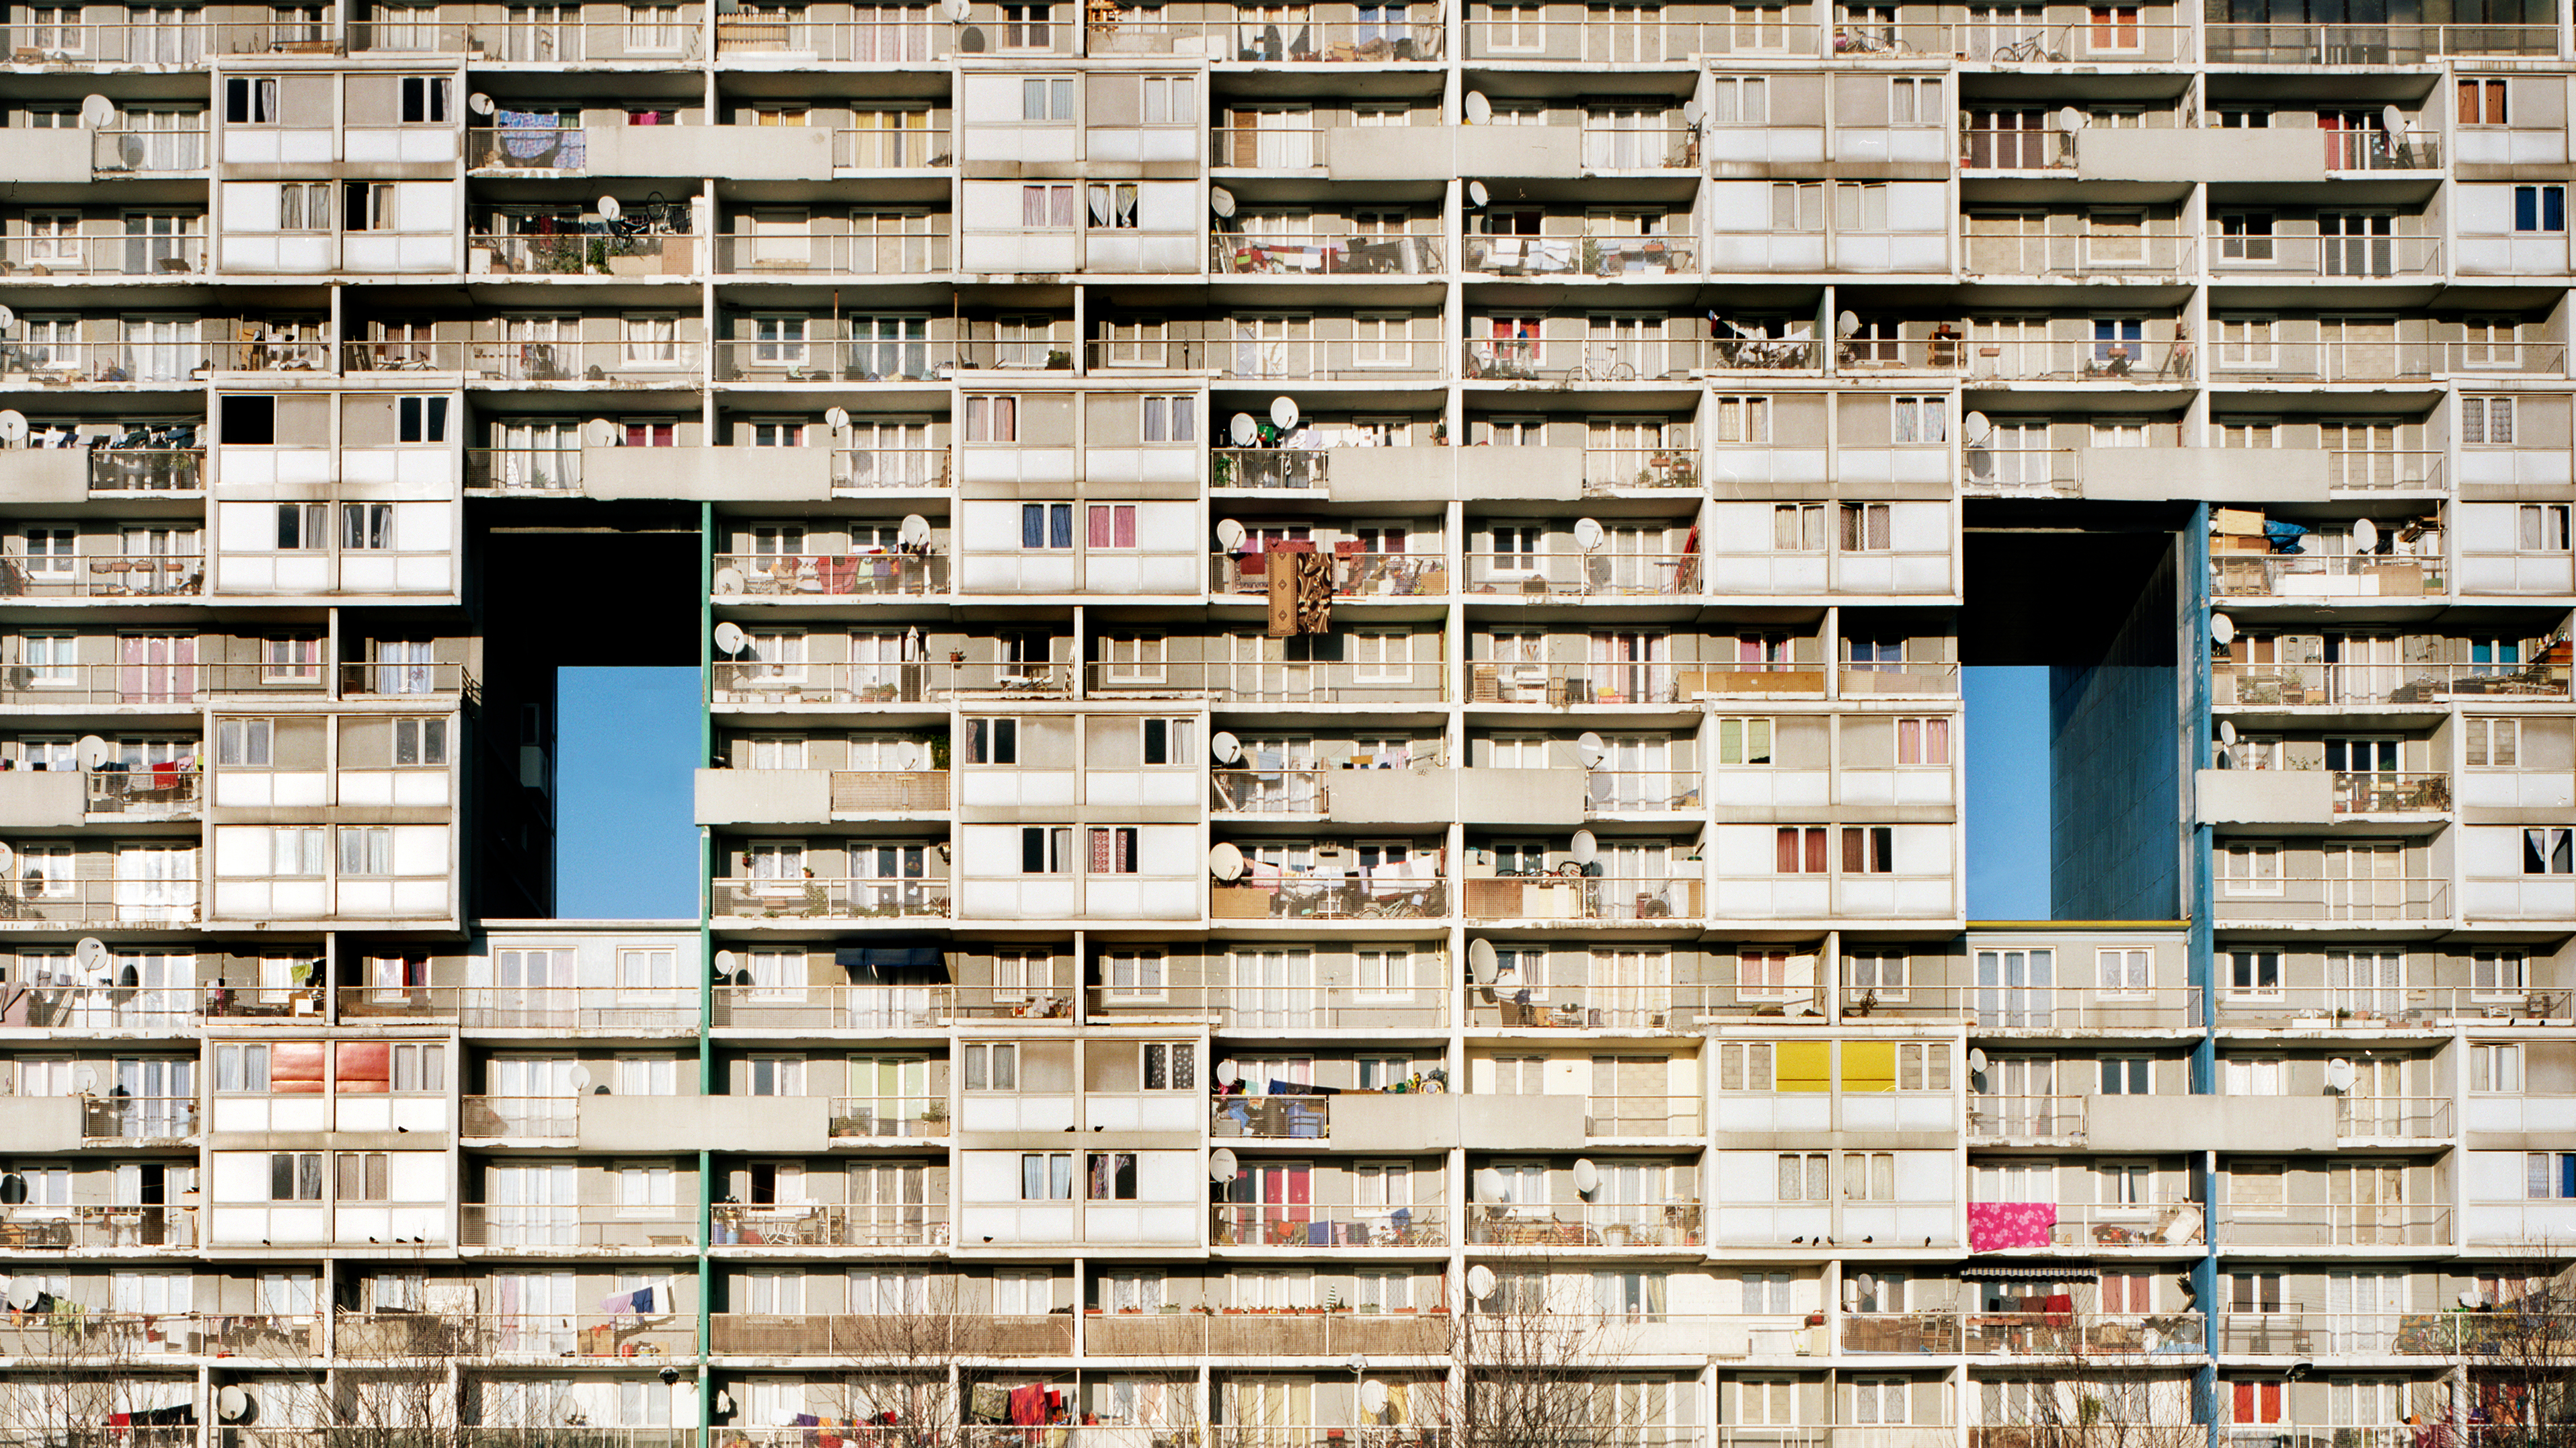 A residence building in the northern suburbs of Paris. Image Credit: Shutterstock/Alex Calvi